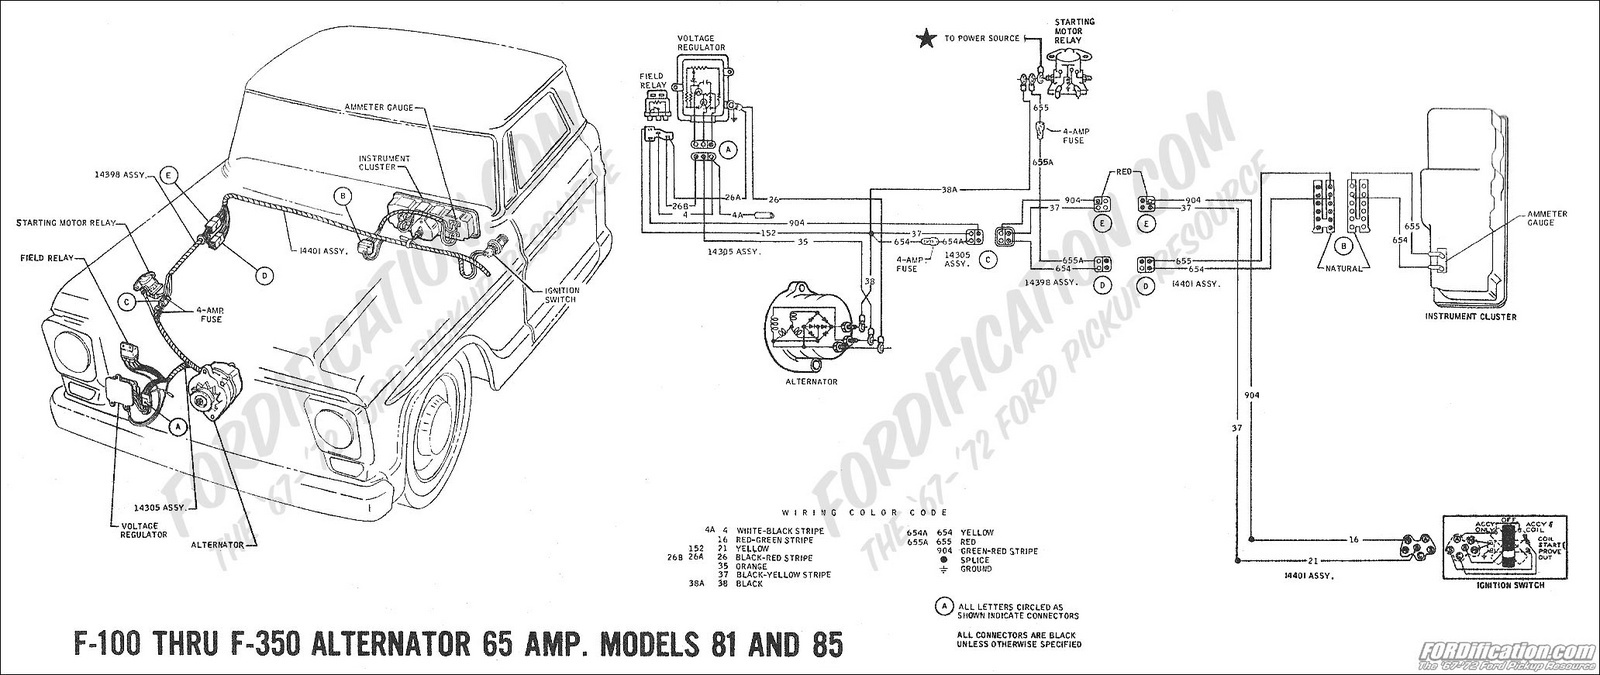 73 ford f100 coil wiring diagram wiring diagram database 1963 ford f100 wiring diagram ford f 100 questions i have a 73 f 100 i have no power to the s 1966 ford truck wiring diagram 73 ford f100 coil wiring diagram